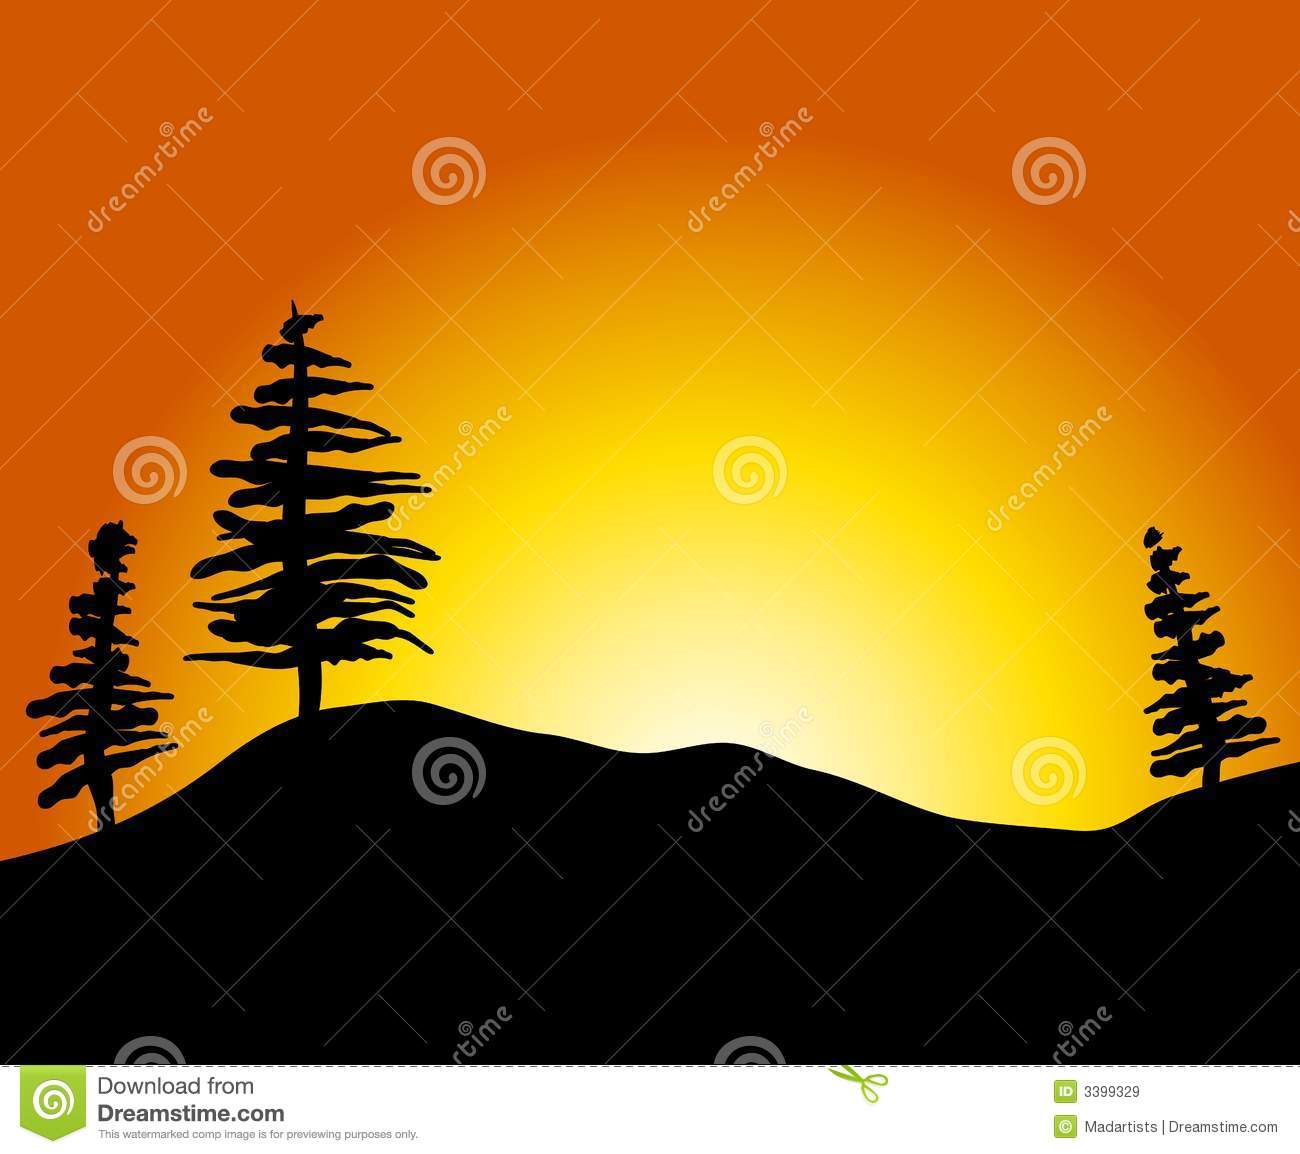 Clipart of sunset.